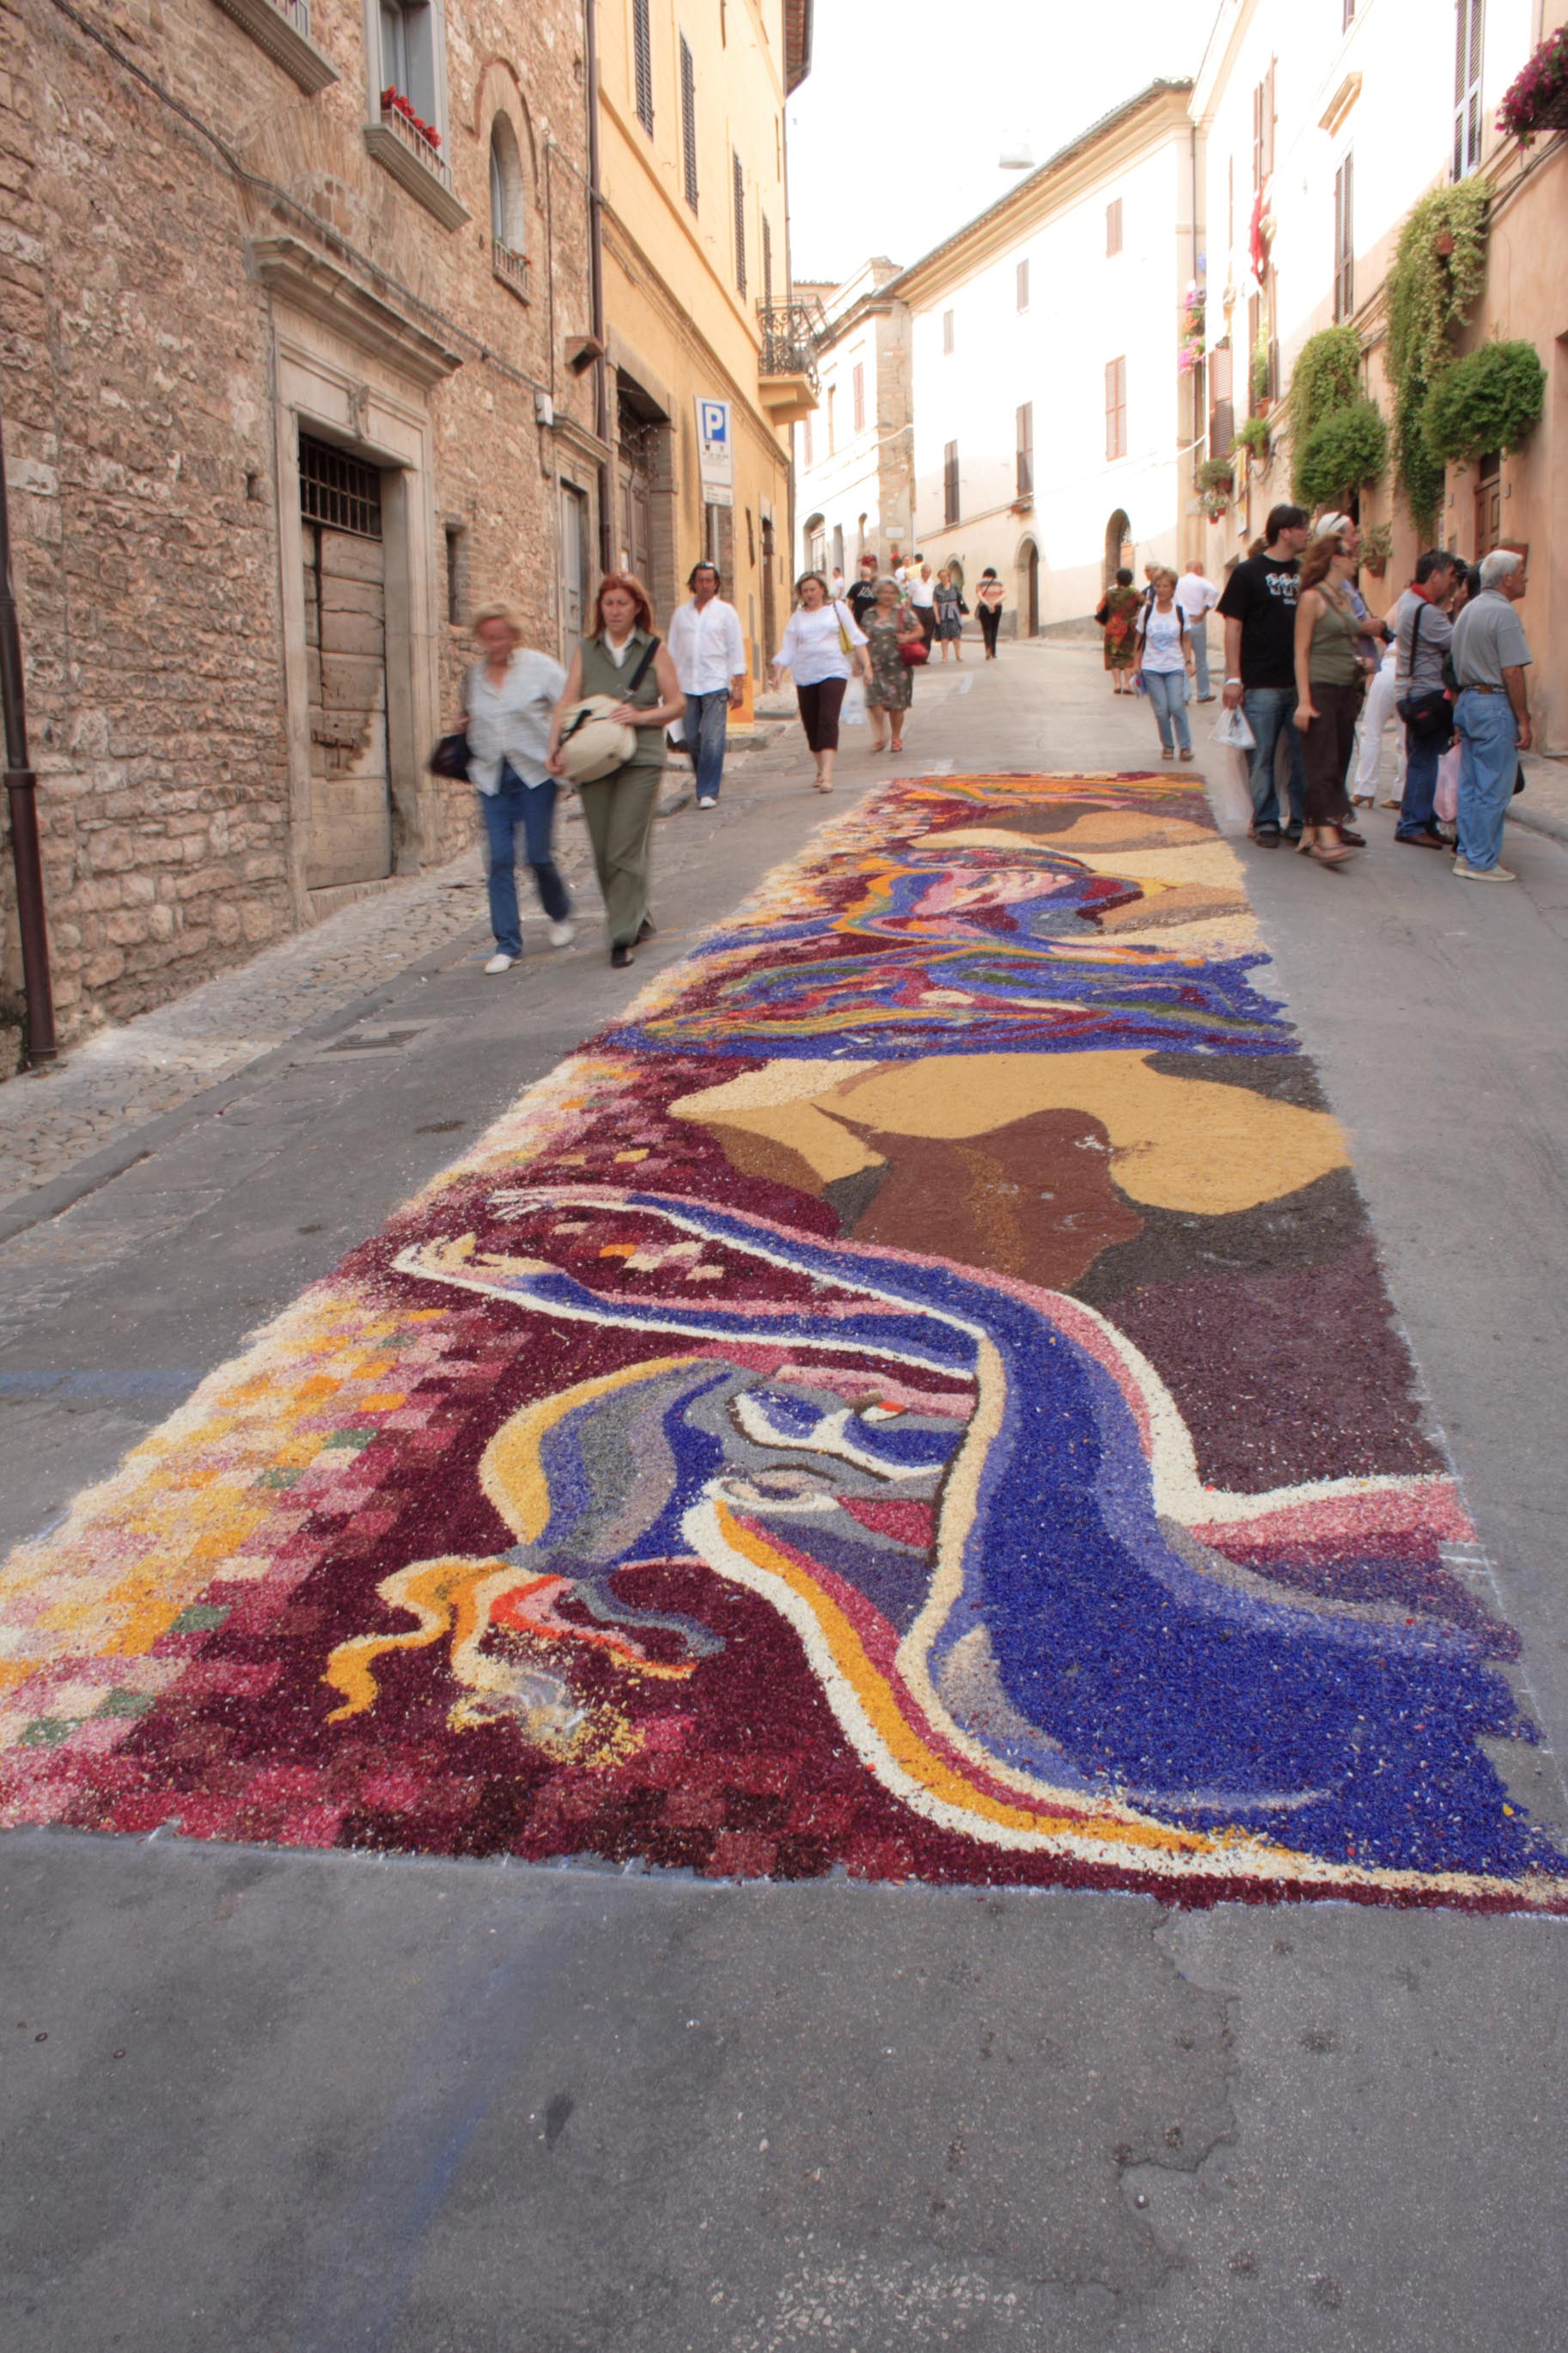 A flower composition on via Consolare